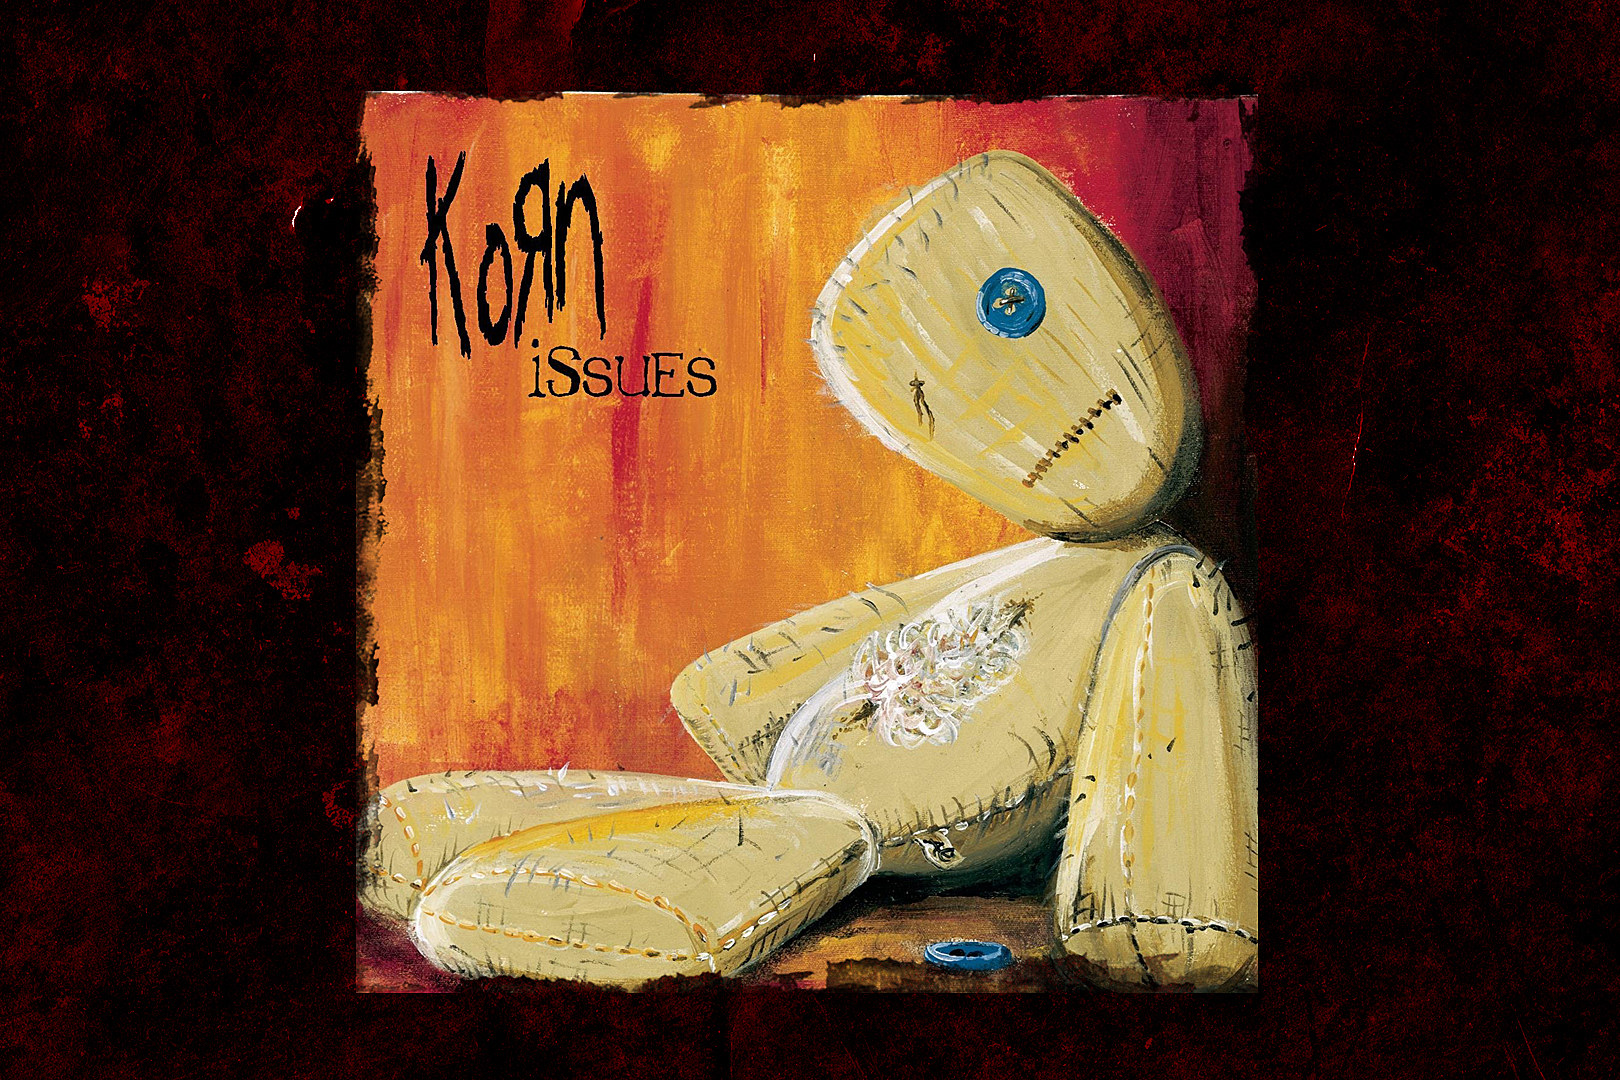 19 Years Ago: Korn Followed Their Own Lead With 'Issues'